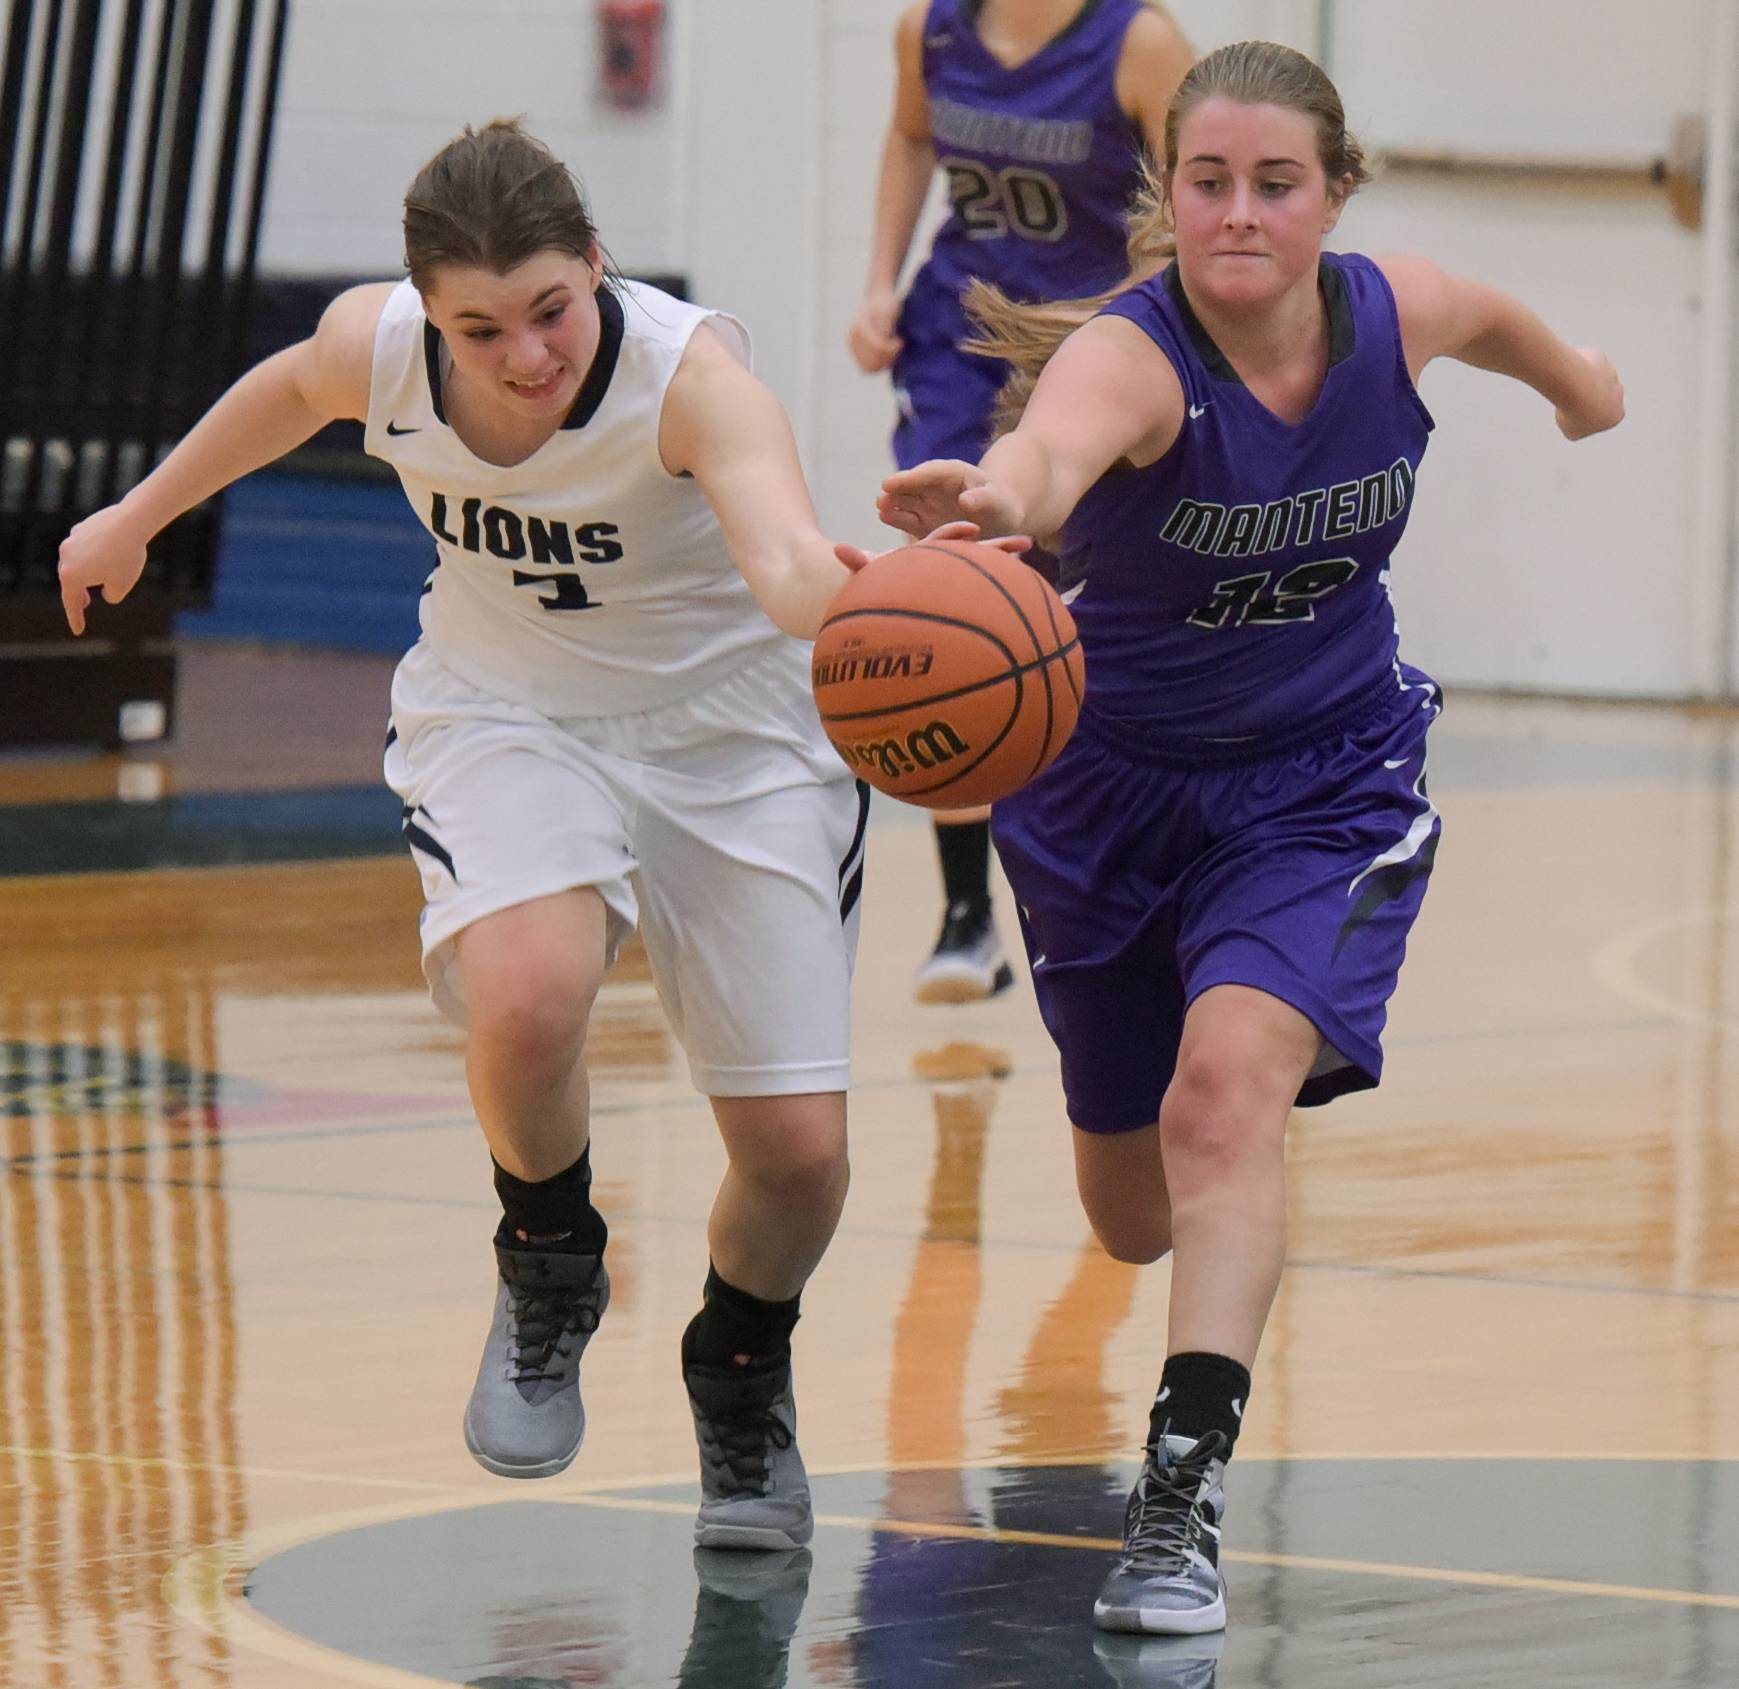 Lisle's Natalie Takahashi and Manteno's Cam Renchen scramble for a loose ball.